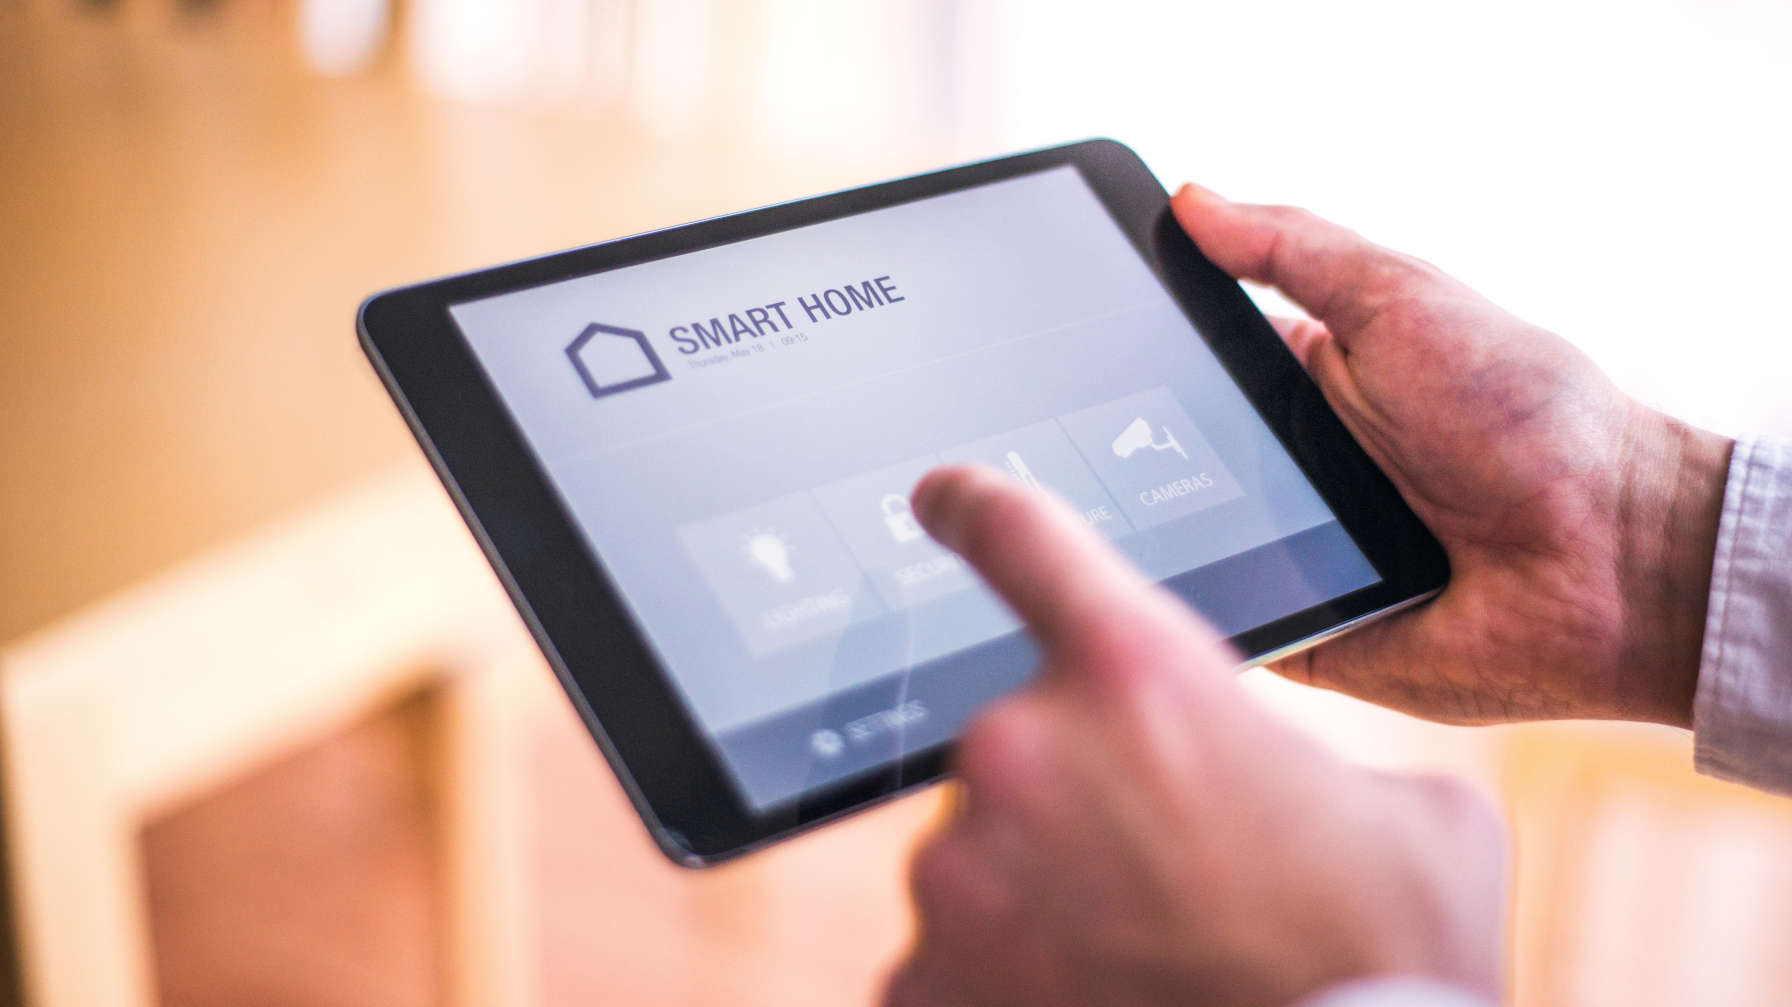 IoT devices and their integration with home automation